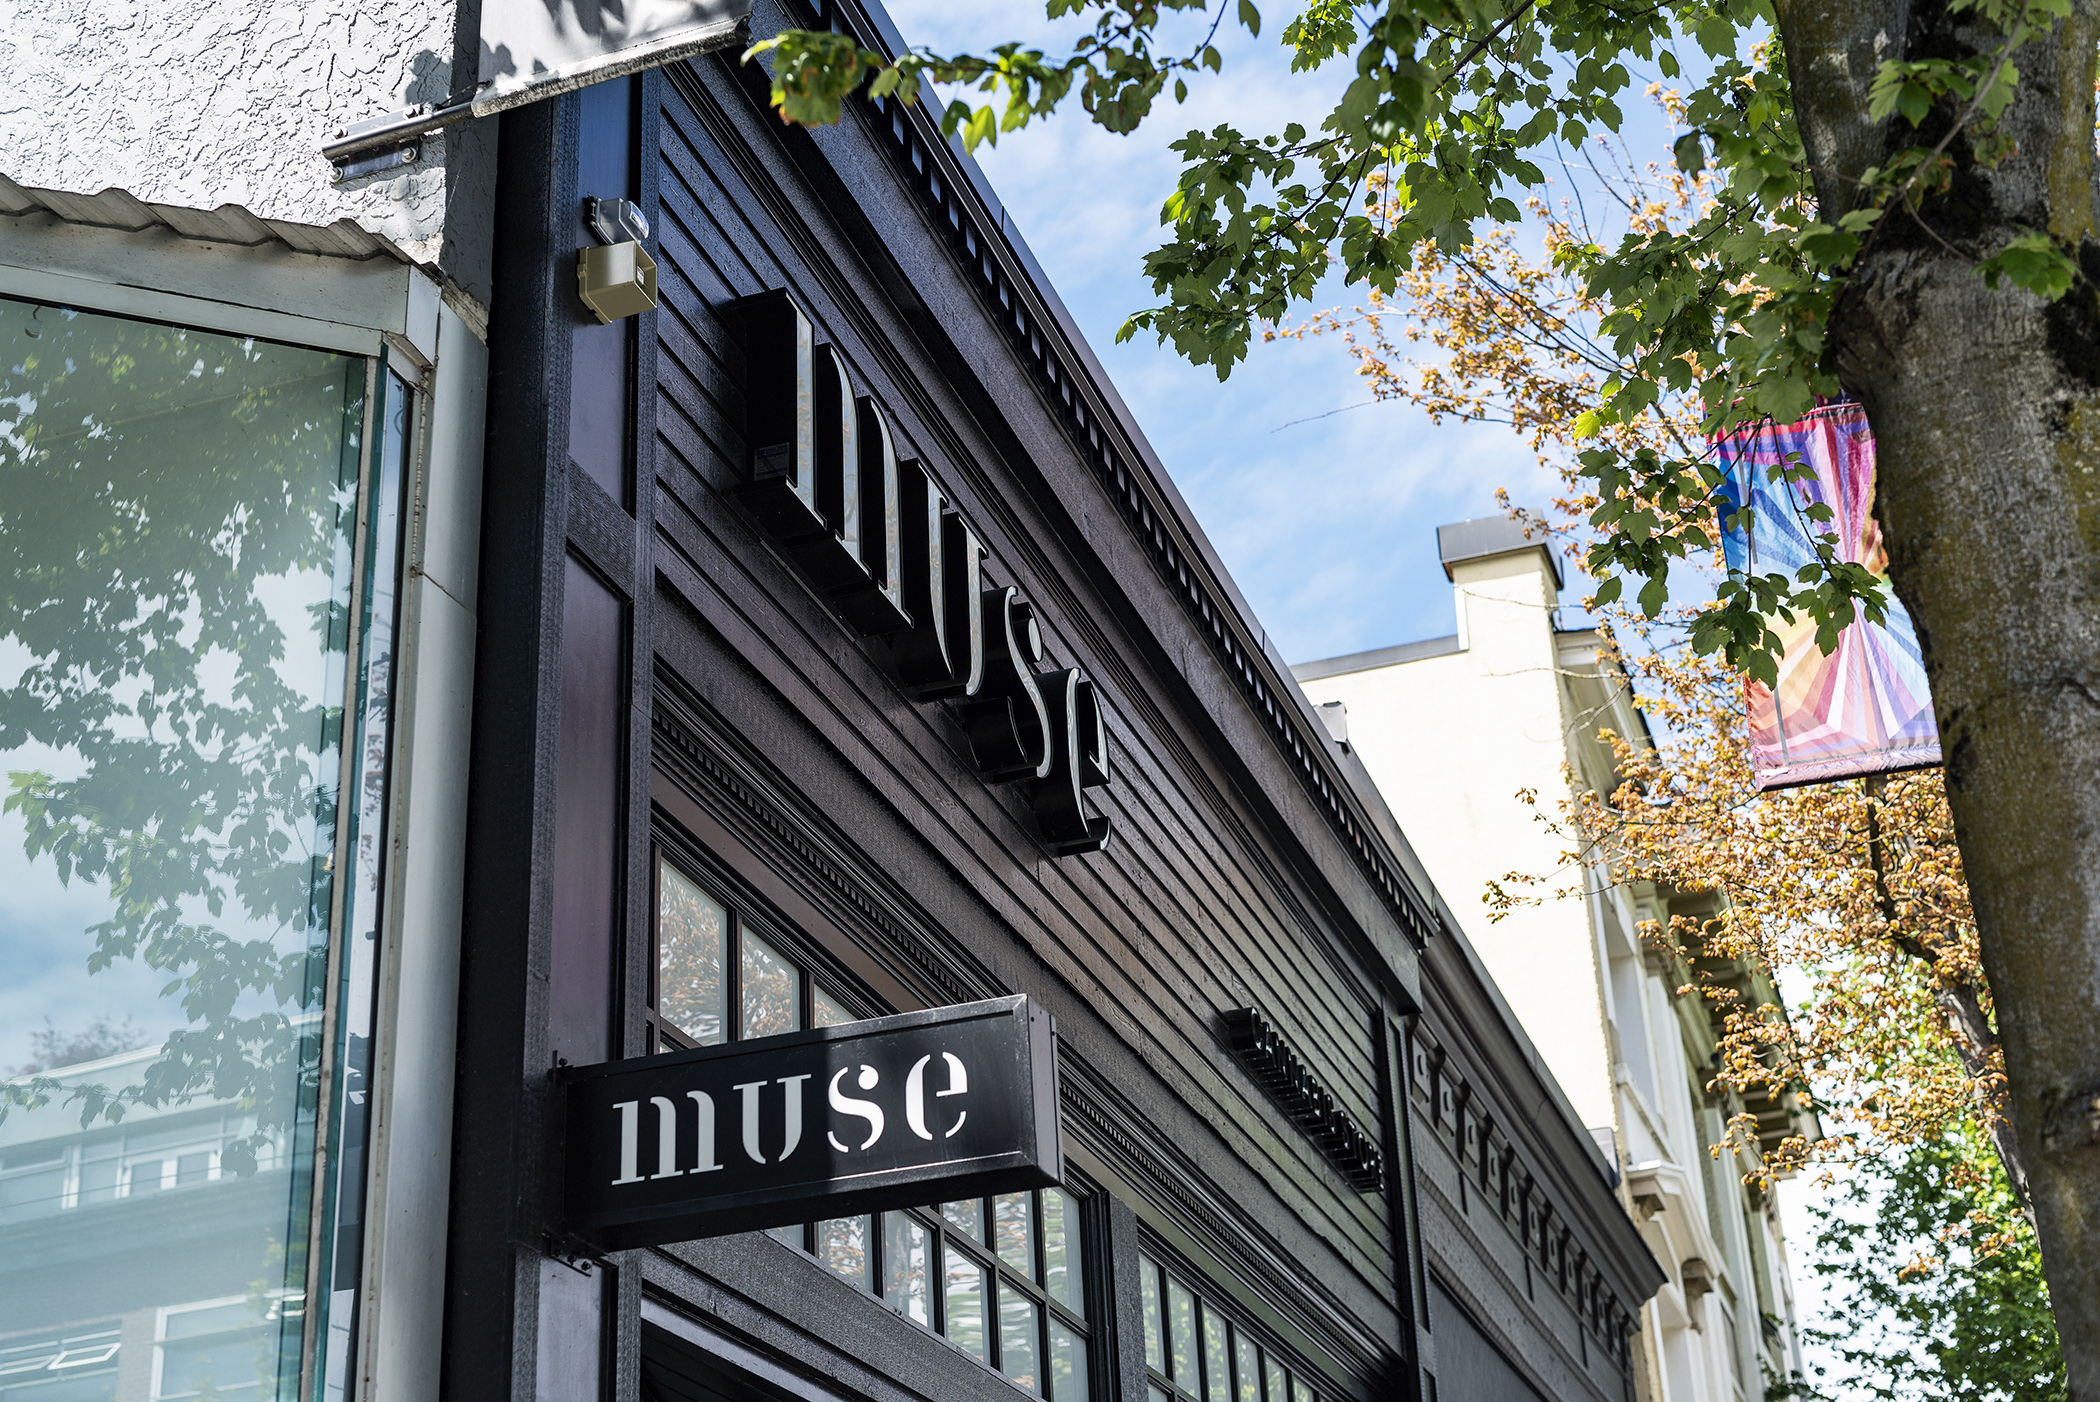 190610_Muse_Store-0235.jpg